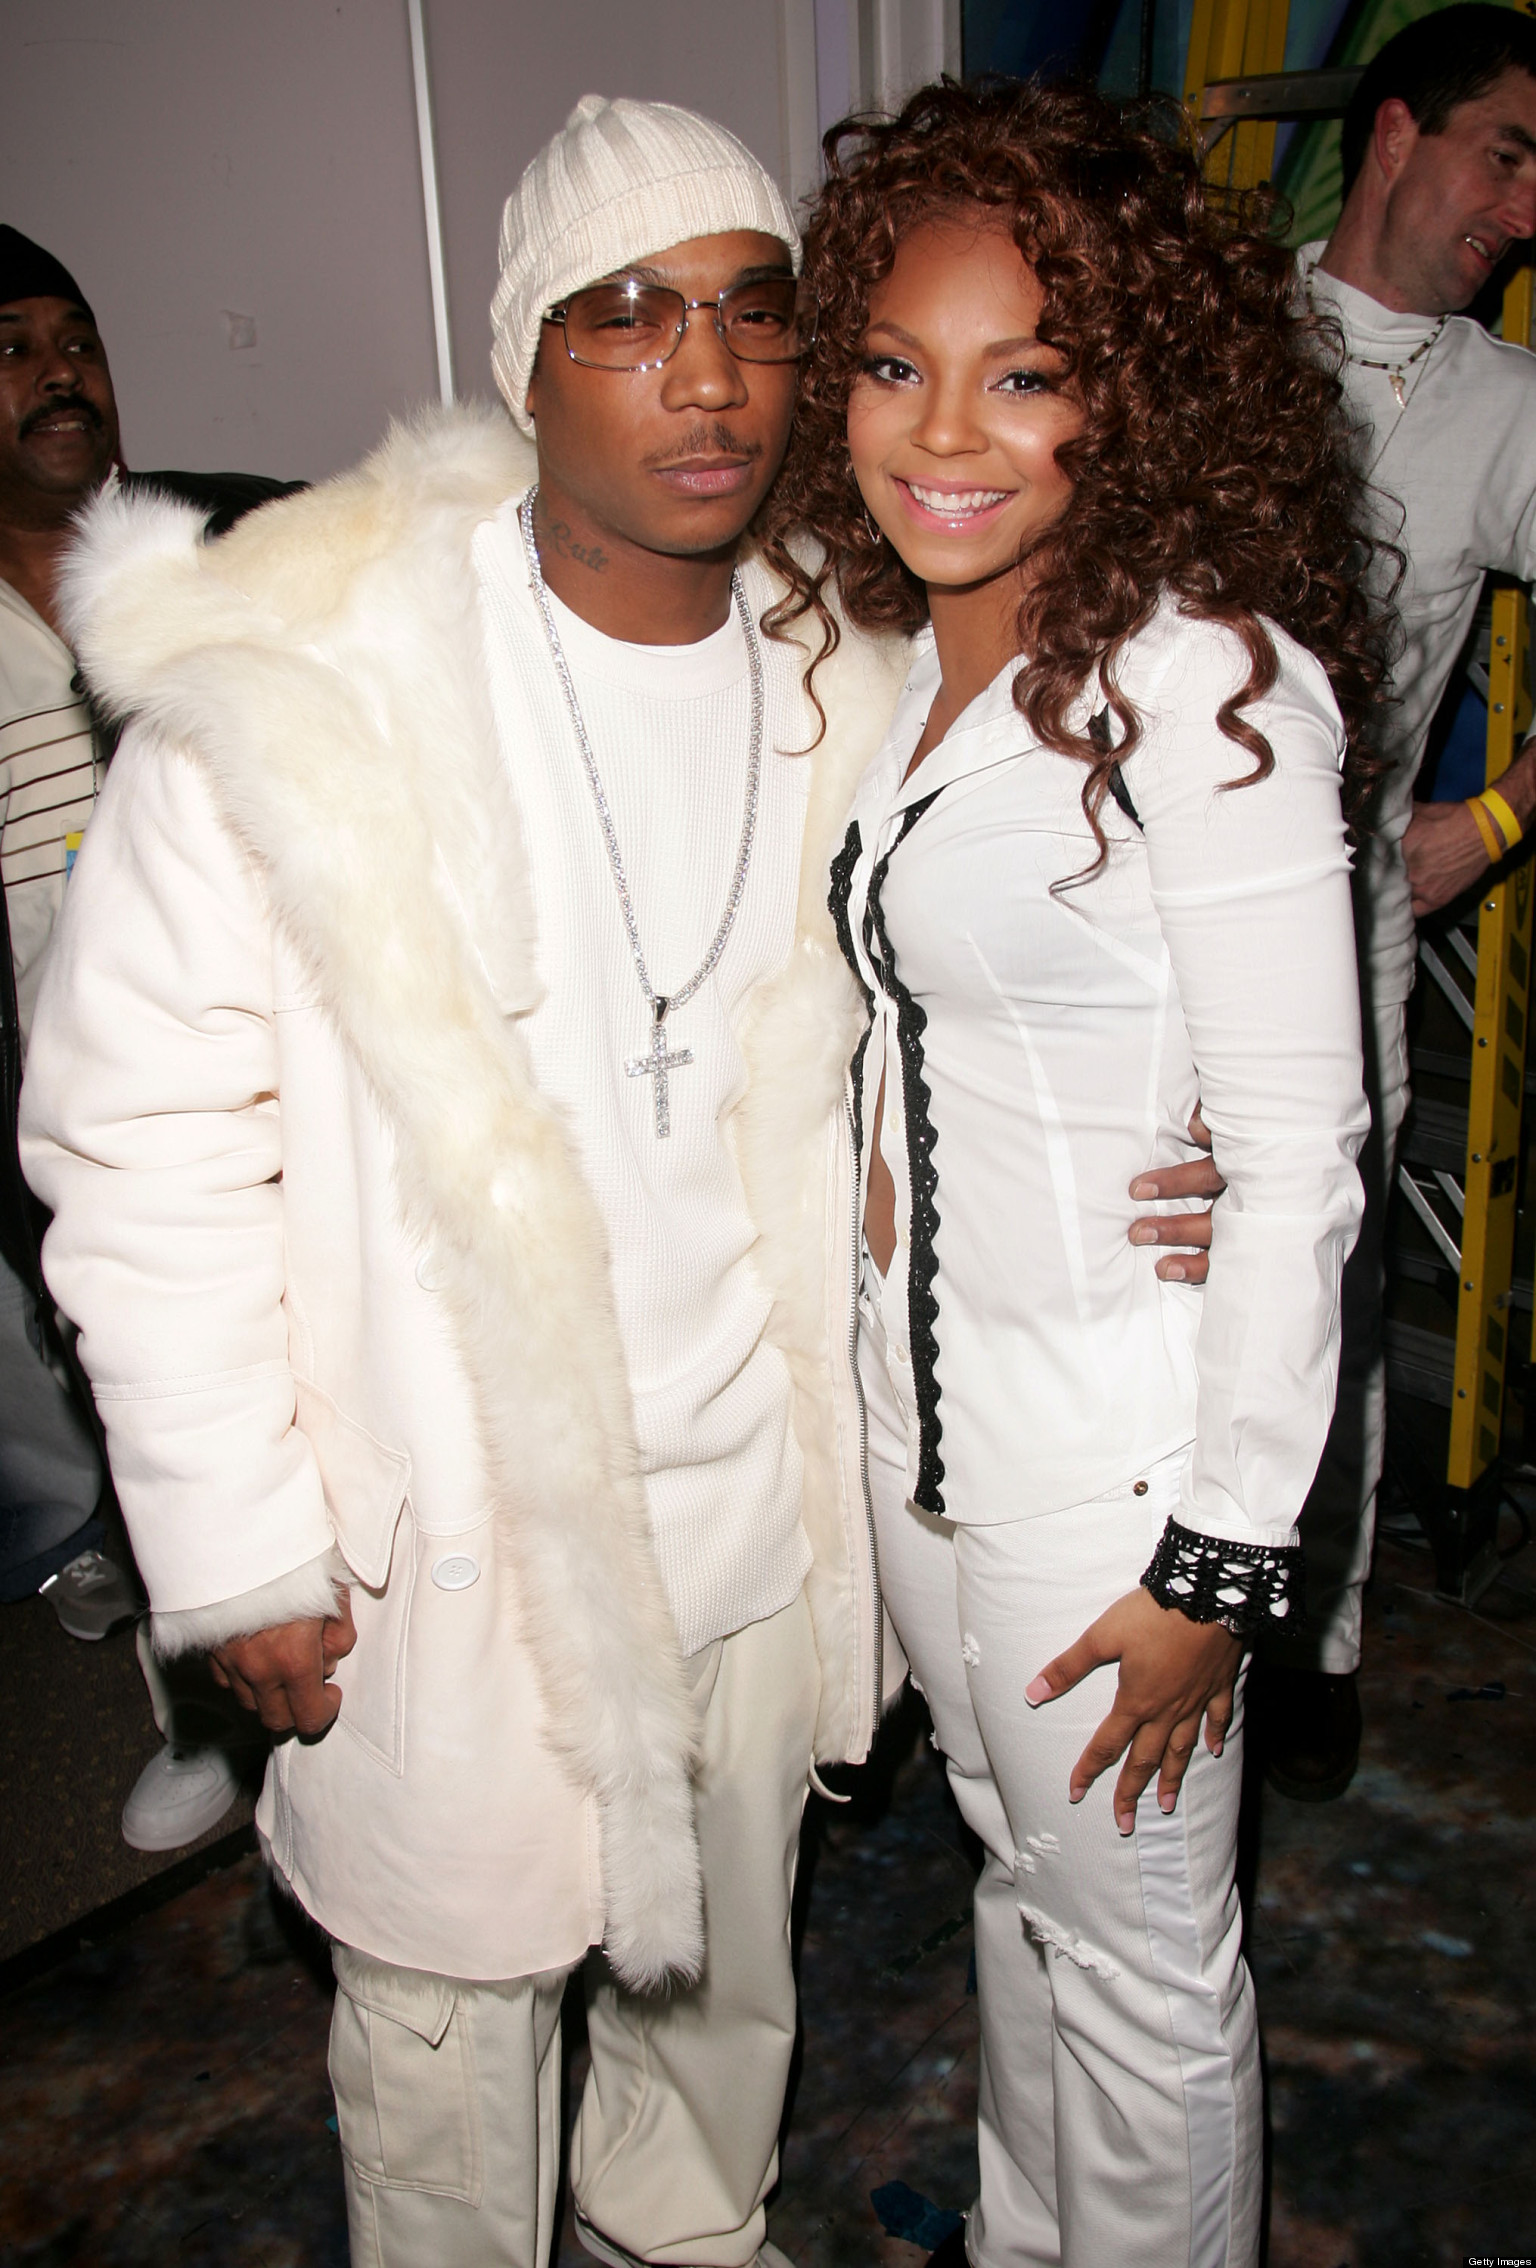 R kelly feat ja rule and ashanti dating